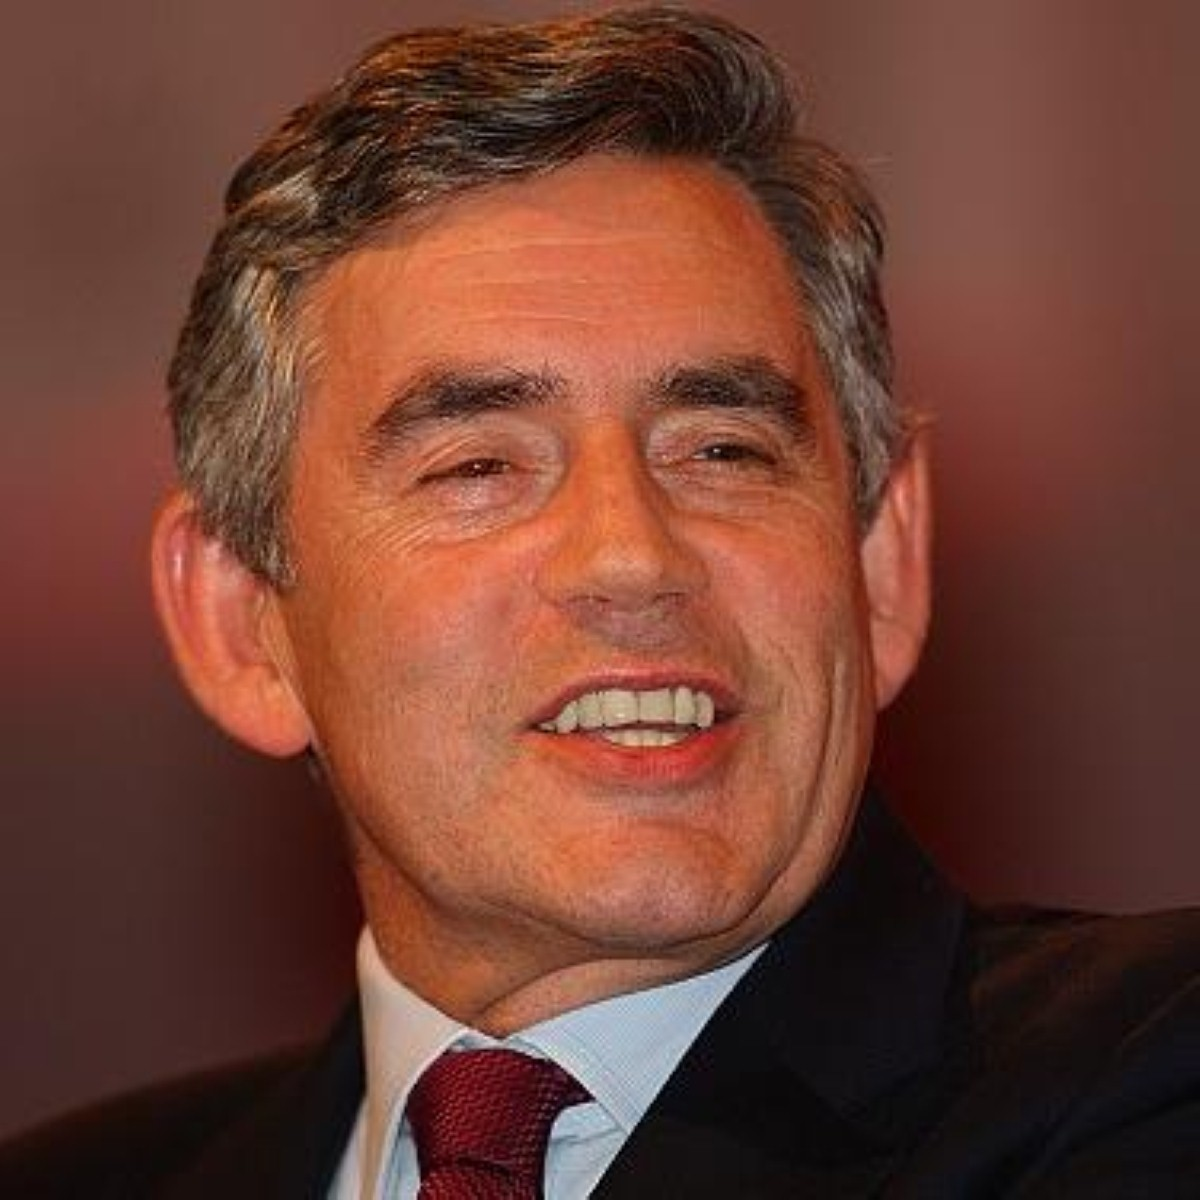 Gordon Brown delivers the speech of his life